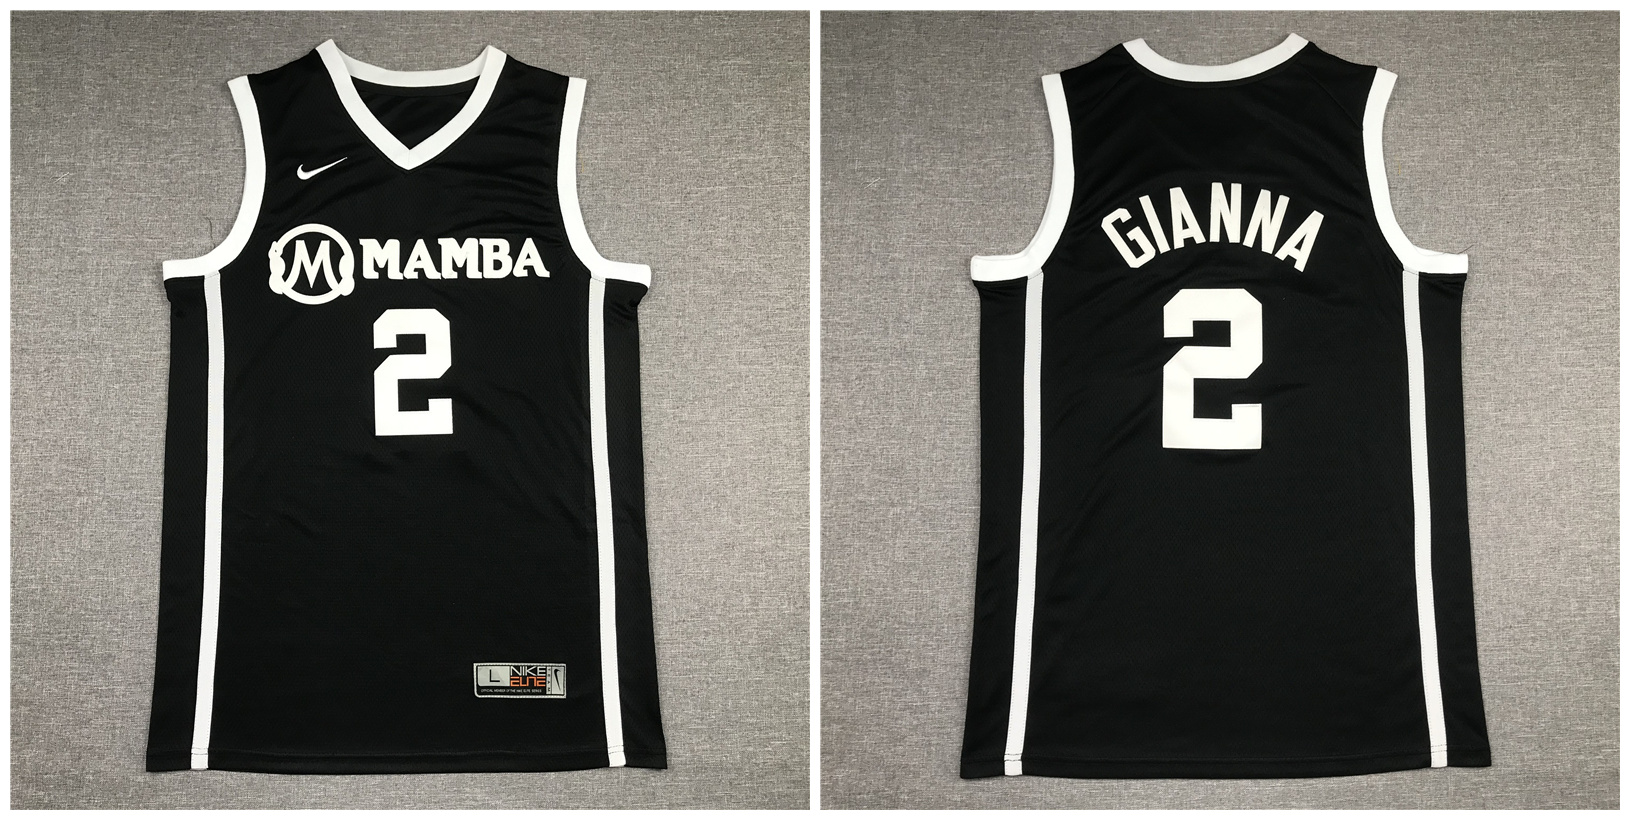 Mamba Gianna Maria 2 Black Kobe Bryant Daughter Stitched Basketball Jersey